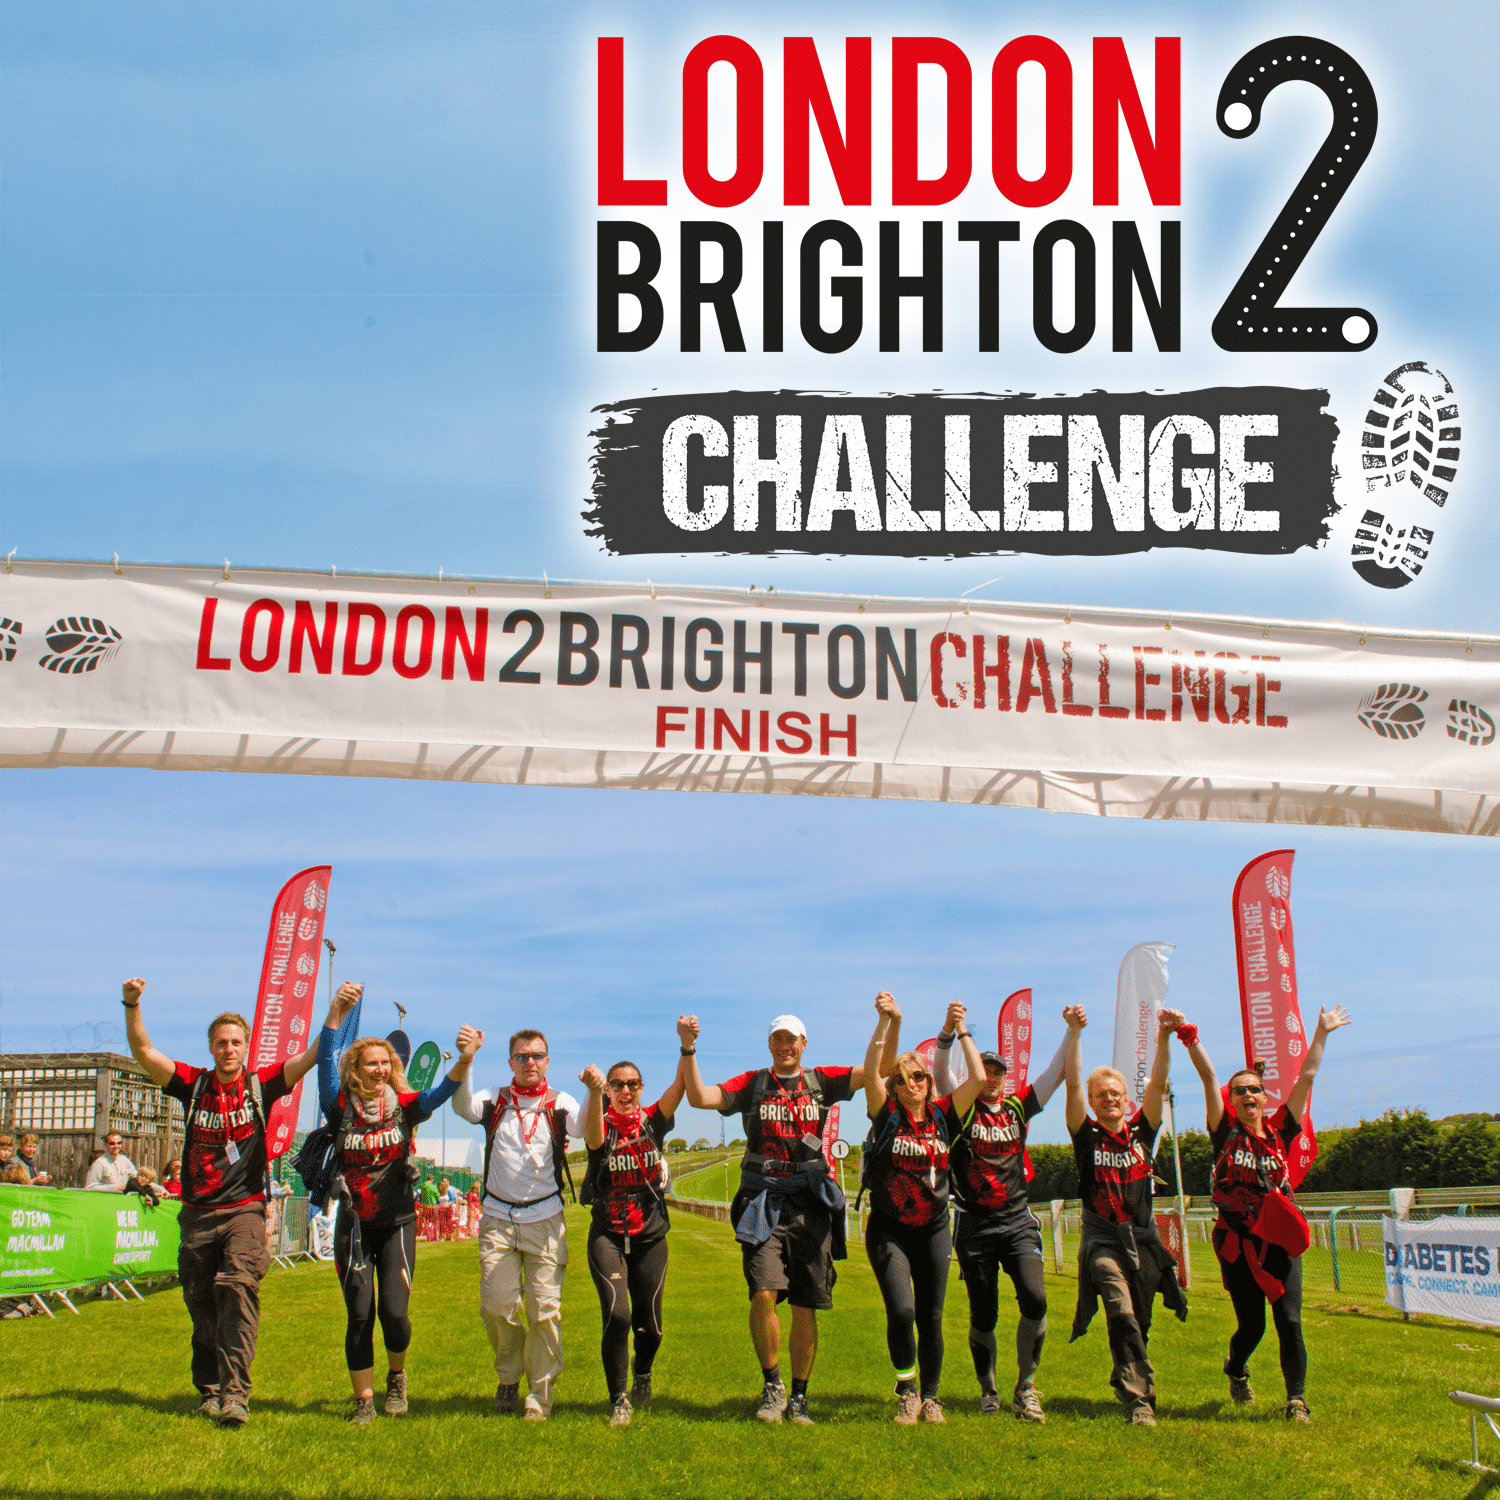 Image shows nine people holding their hands in the air at the finish line. The top right reads 'London 2 Brighton Challenge'